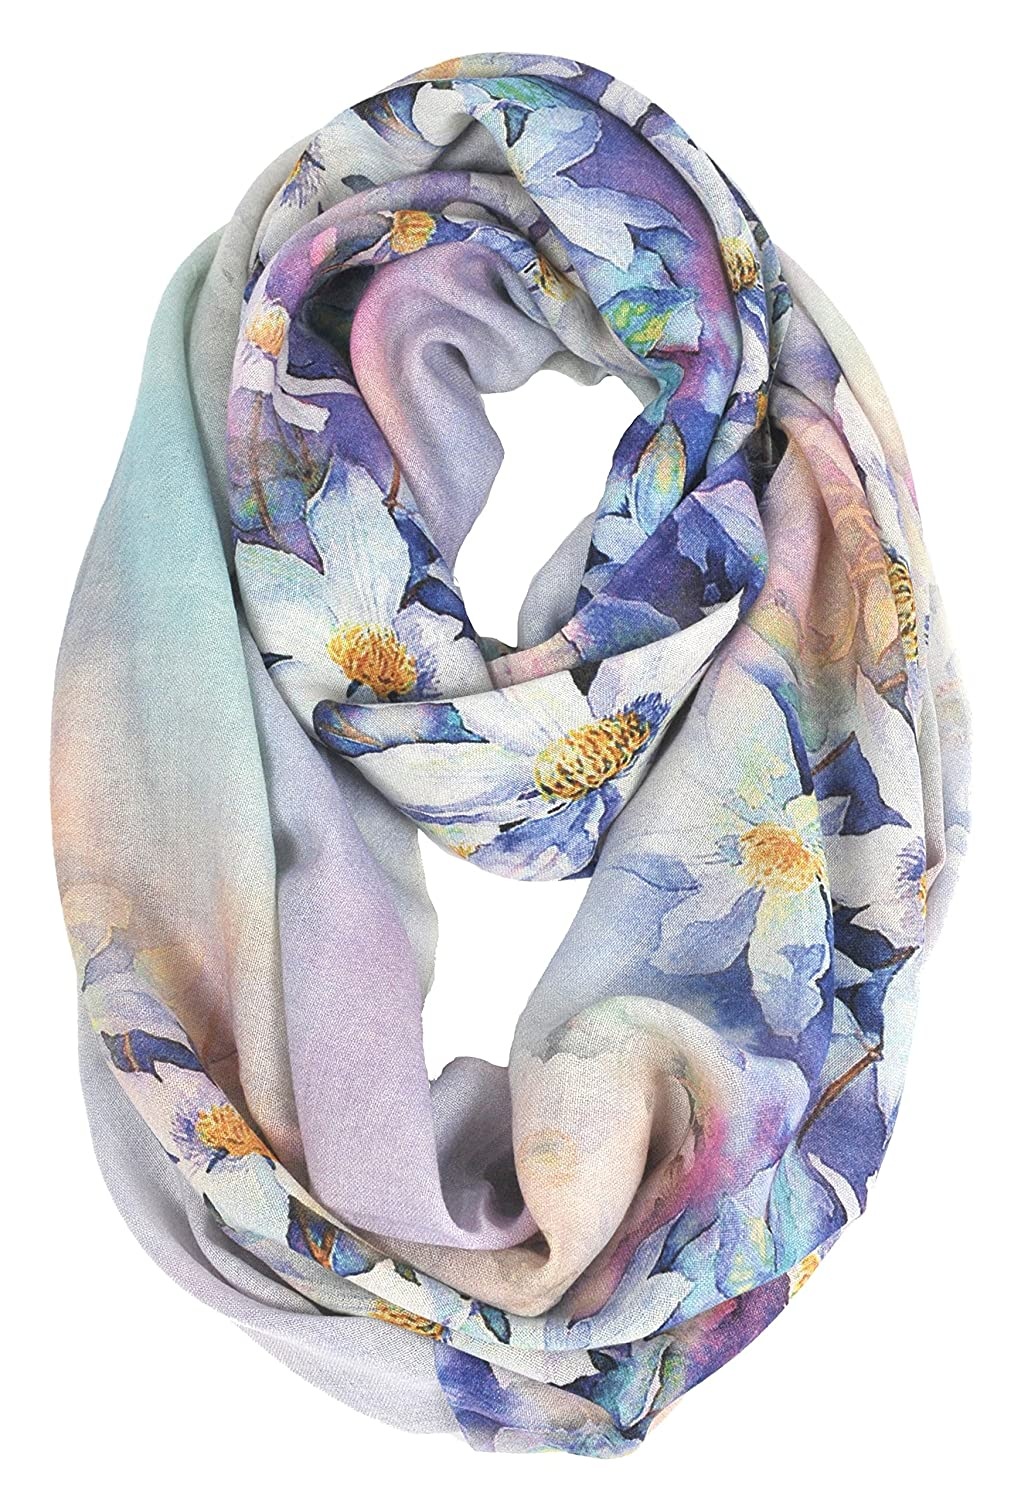 Purple Flower Winter Blanket Scarfs For Men And Women, Cashmere Like Pashmina Shawls And Wraps Scarves Solid color (bluee Tone)